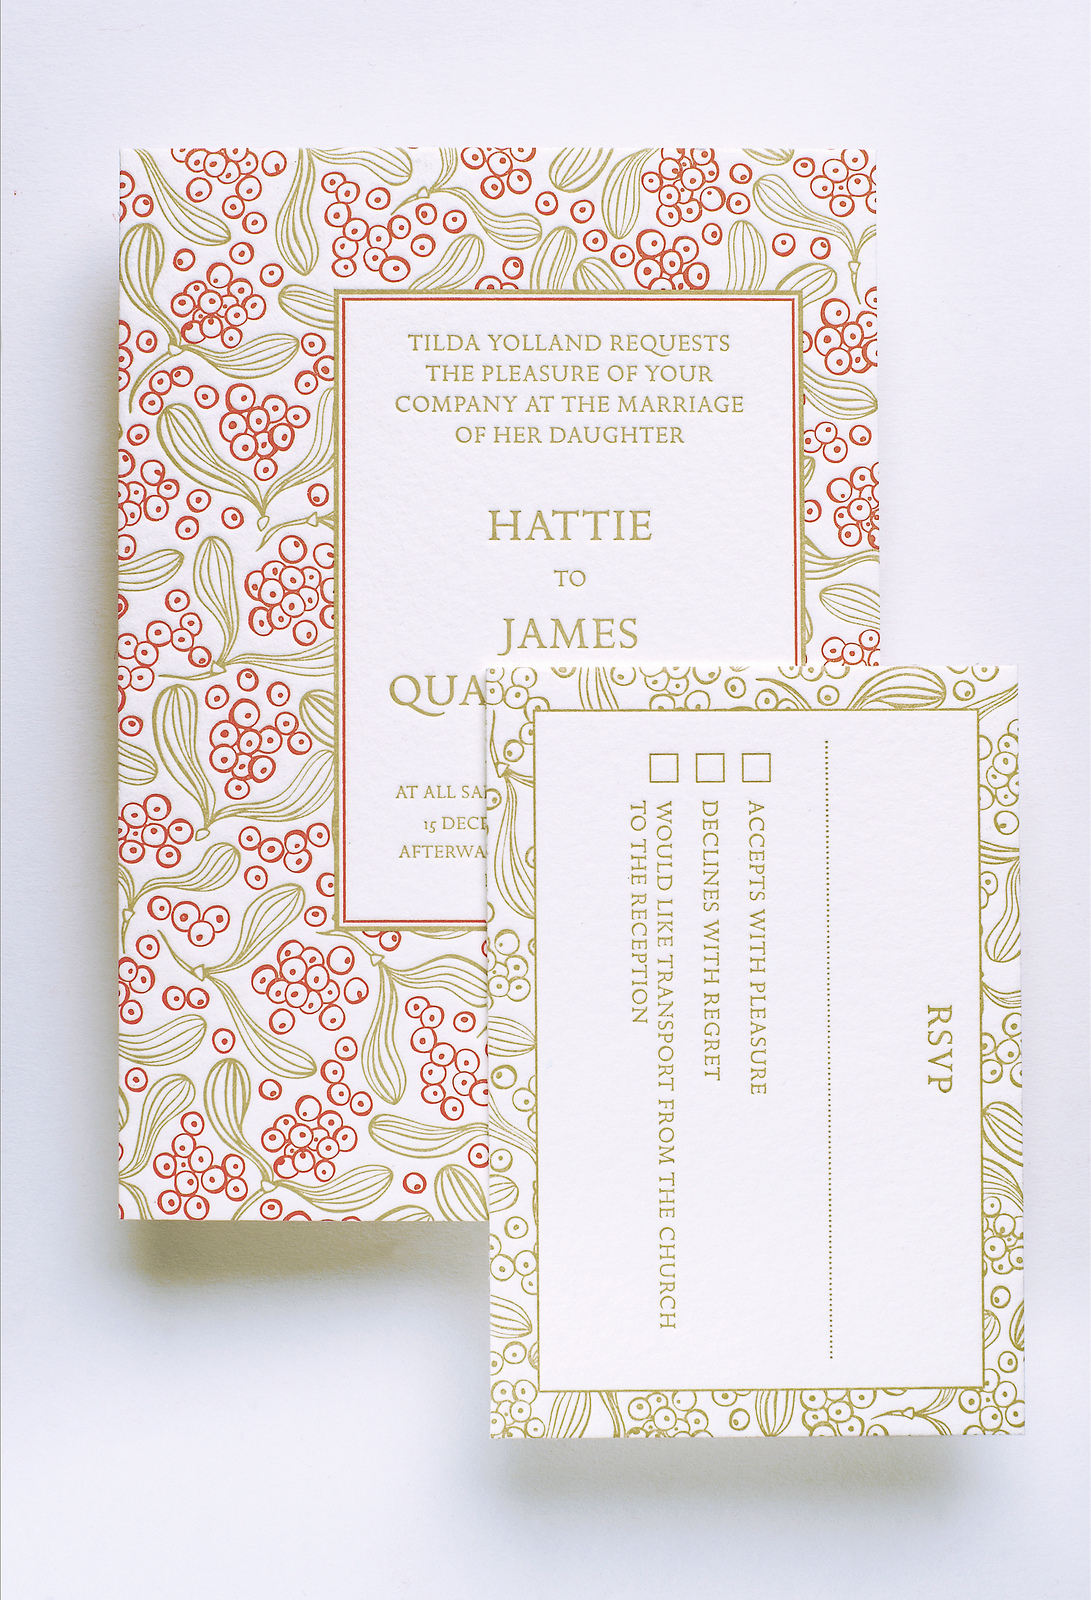 A letterpress wedding invitation